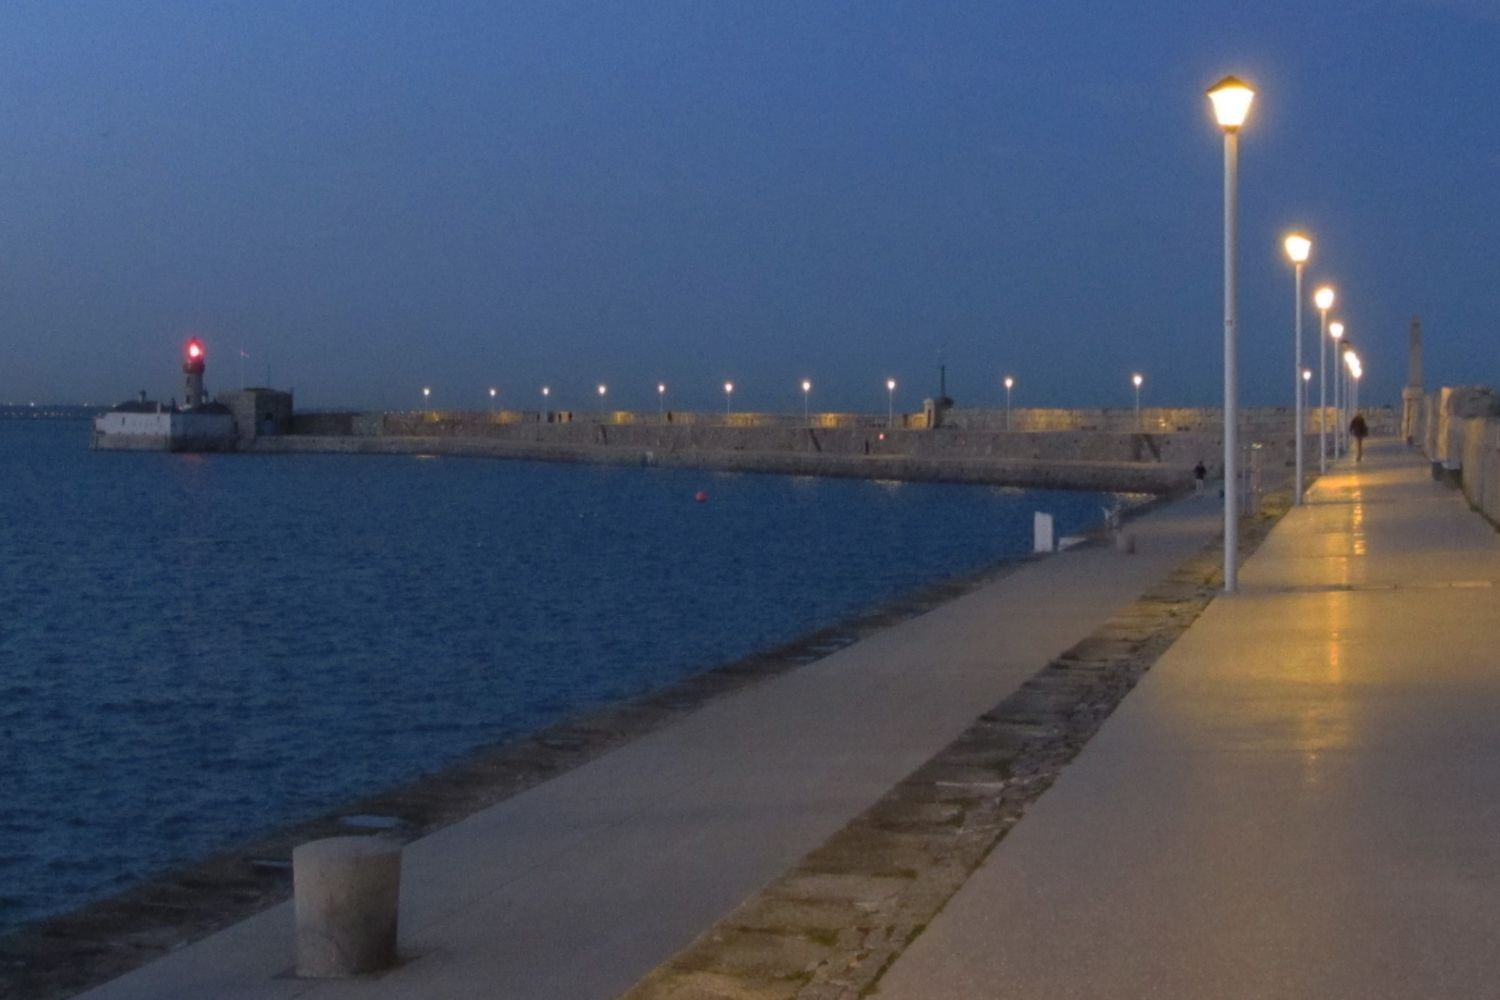 Dun Laoire pier (at twilight)